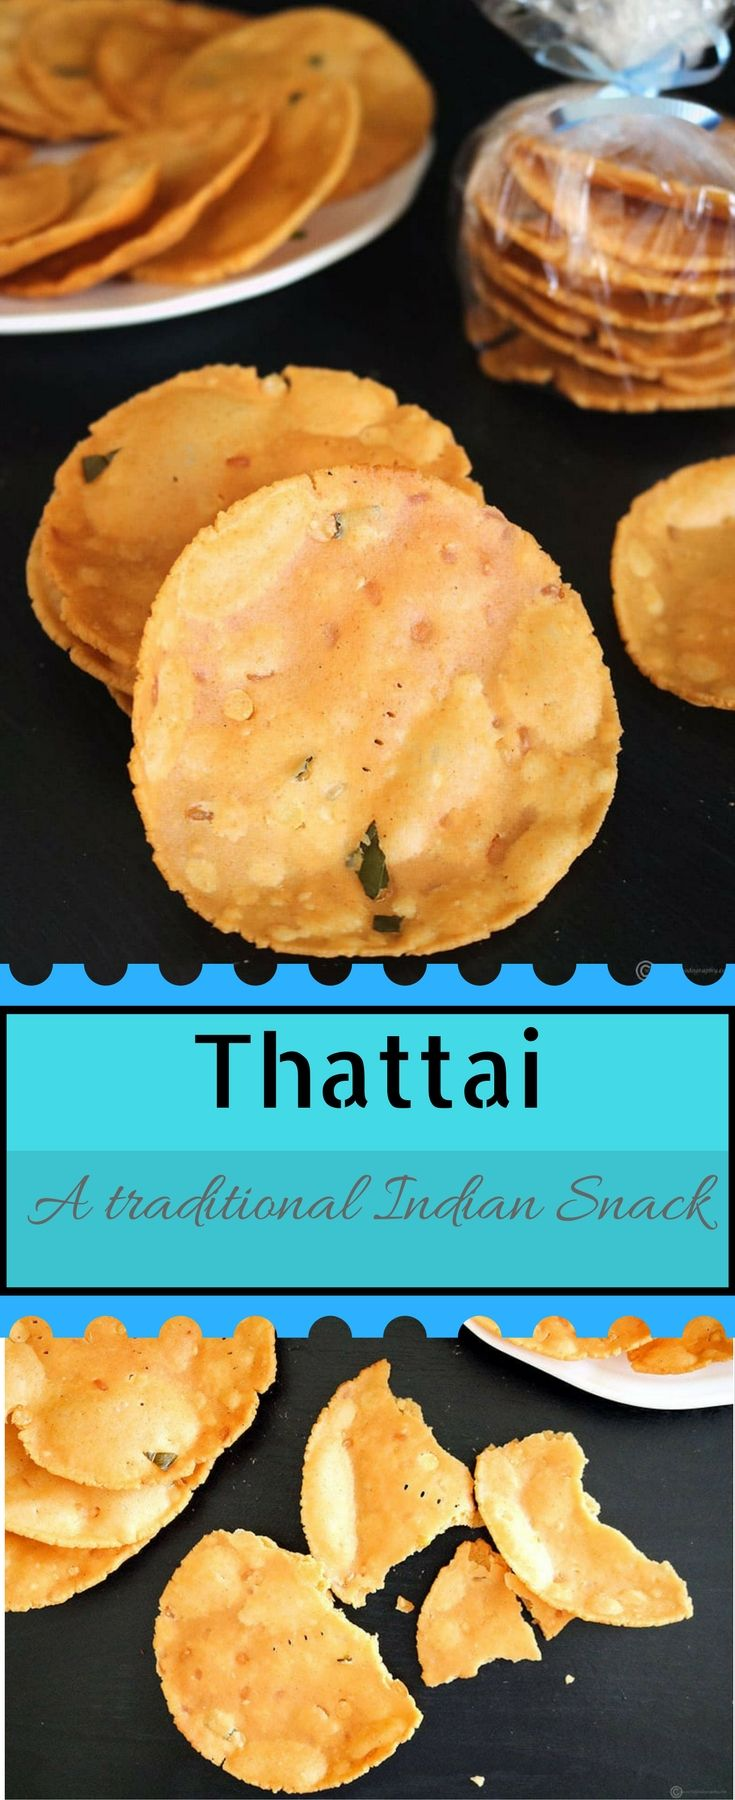 71 best Snacks and Appetizers images on Pinterest | Indian food ...